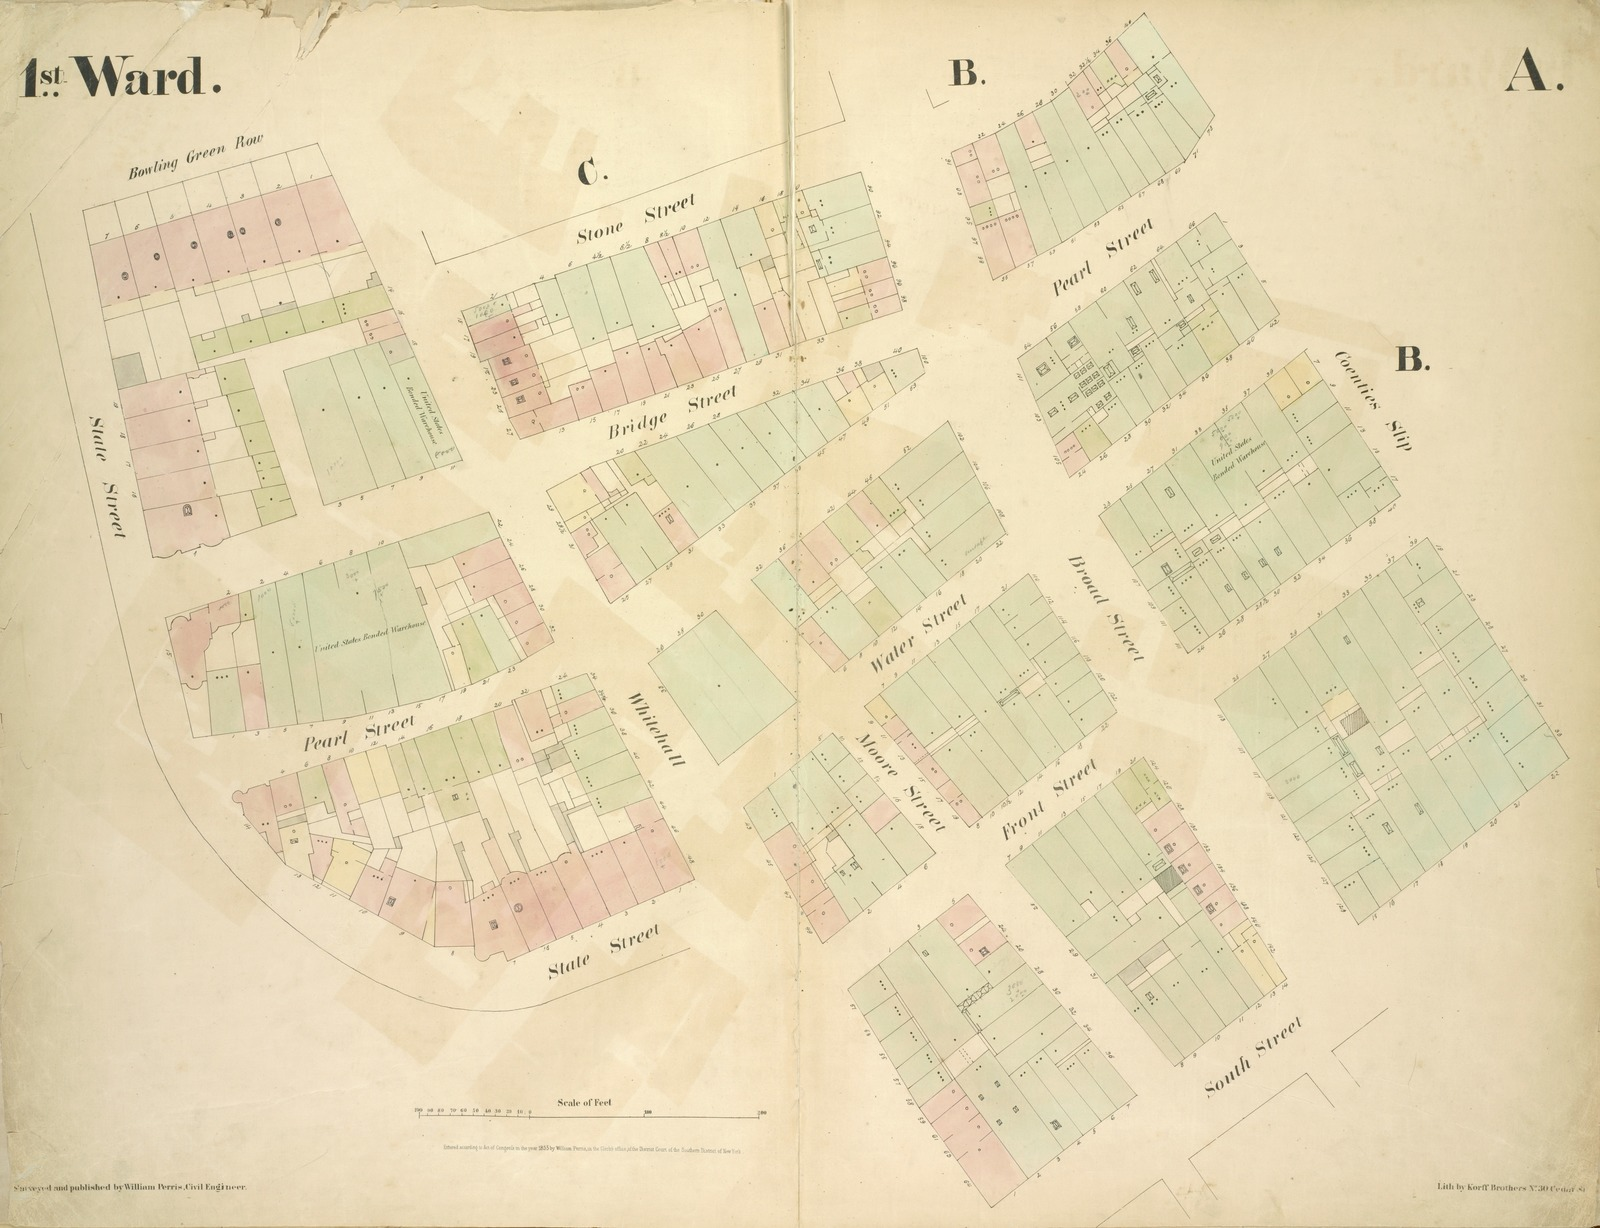 [1st Ward. Plate: A Map bounded by Bowling Green Row, Stone Street, Coenties Slip, South Street, Whitehall, State Street; Including Bridge Street, Pearl Street, Water Street, Front Street, Moore Street, Broad Street]